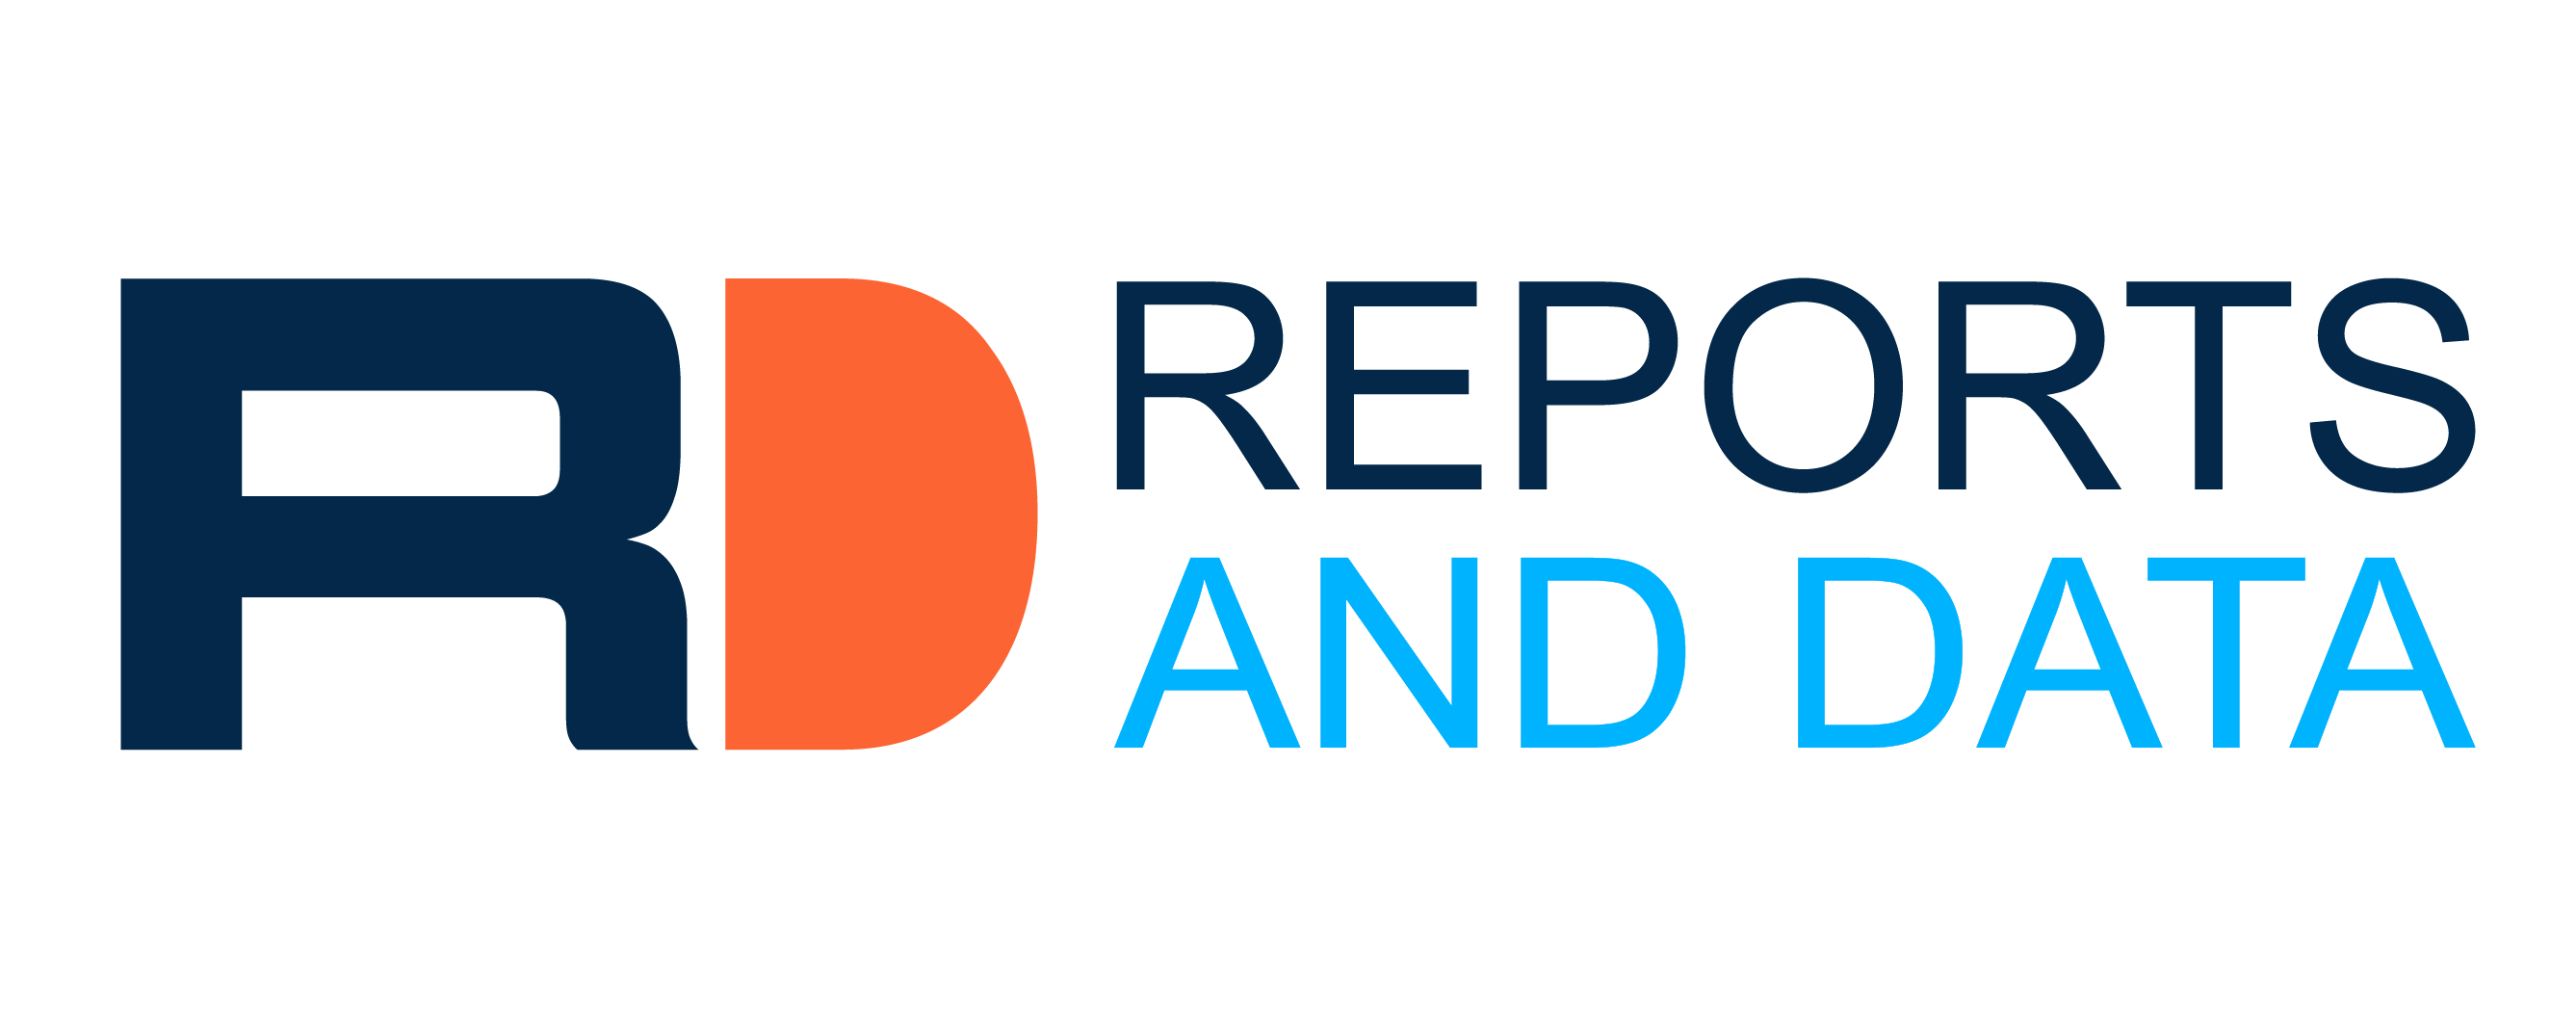 Alopecia Market Trends, Analysis, Demand and Global Industry Research Report, Region, and Segment Forecasts, 2020-2027